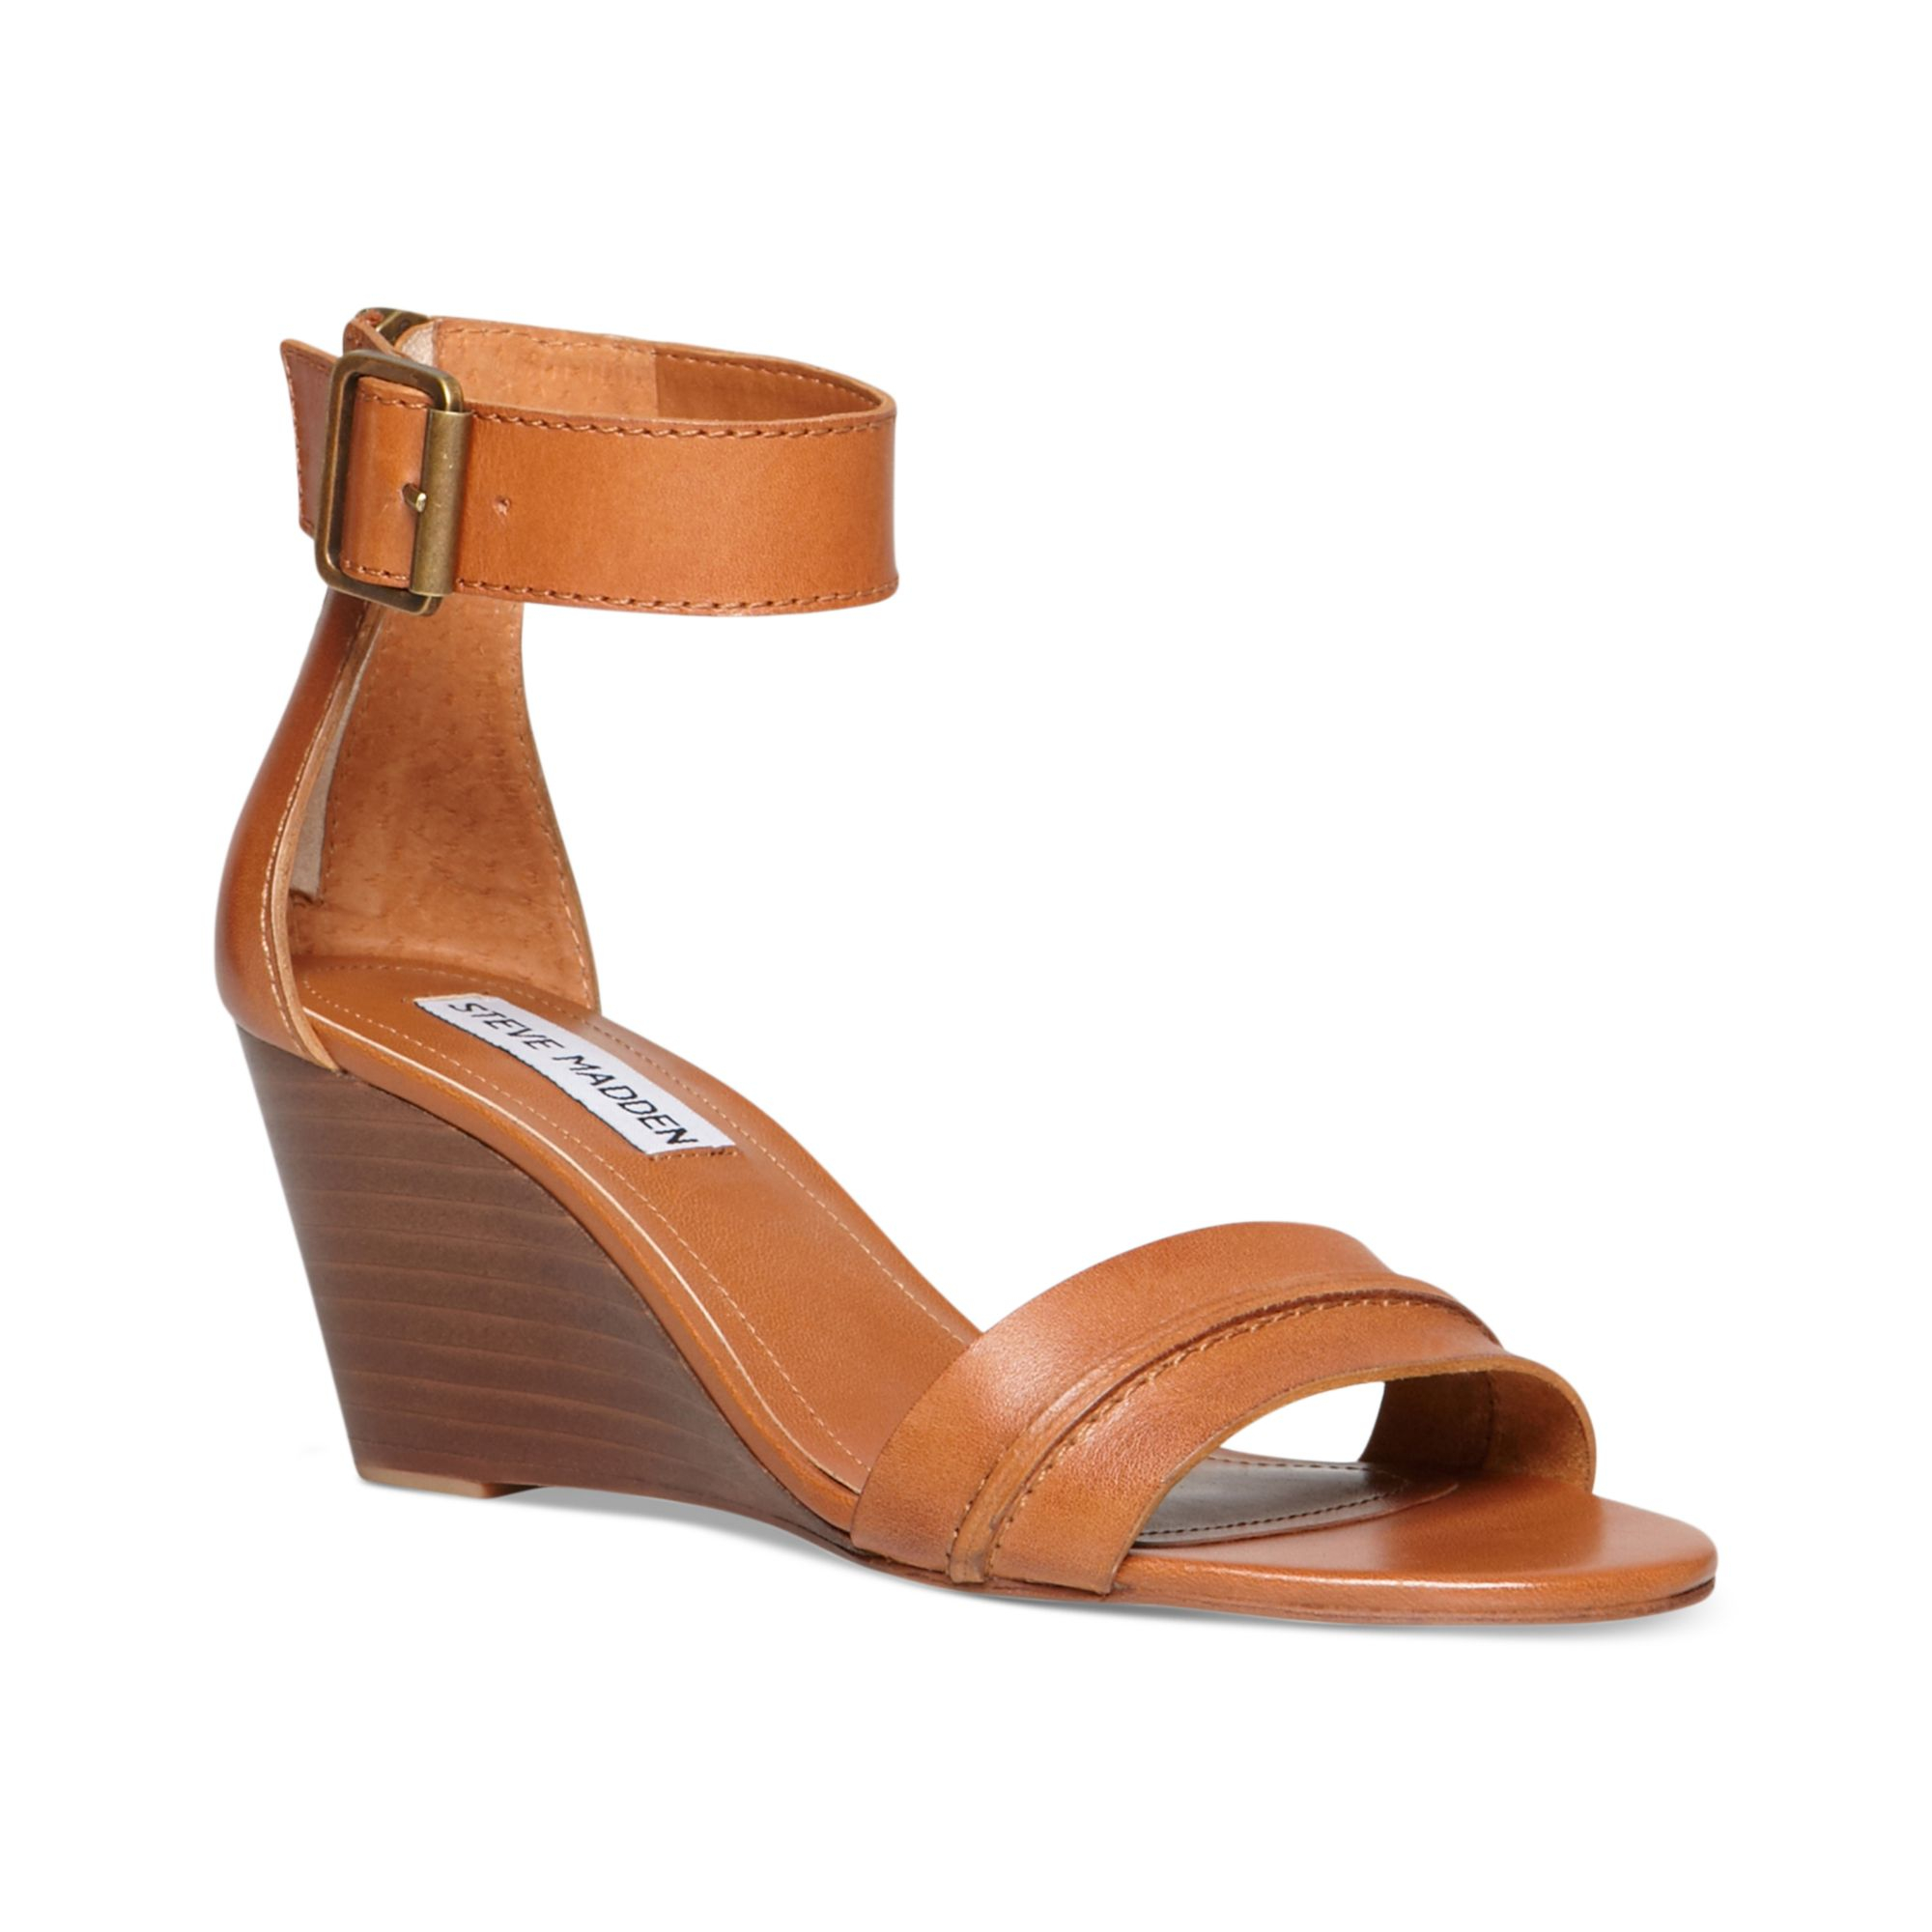 Neliee Lyst Womens Sandals In Steve Brown Madden Wedge O8wXn0Pk